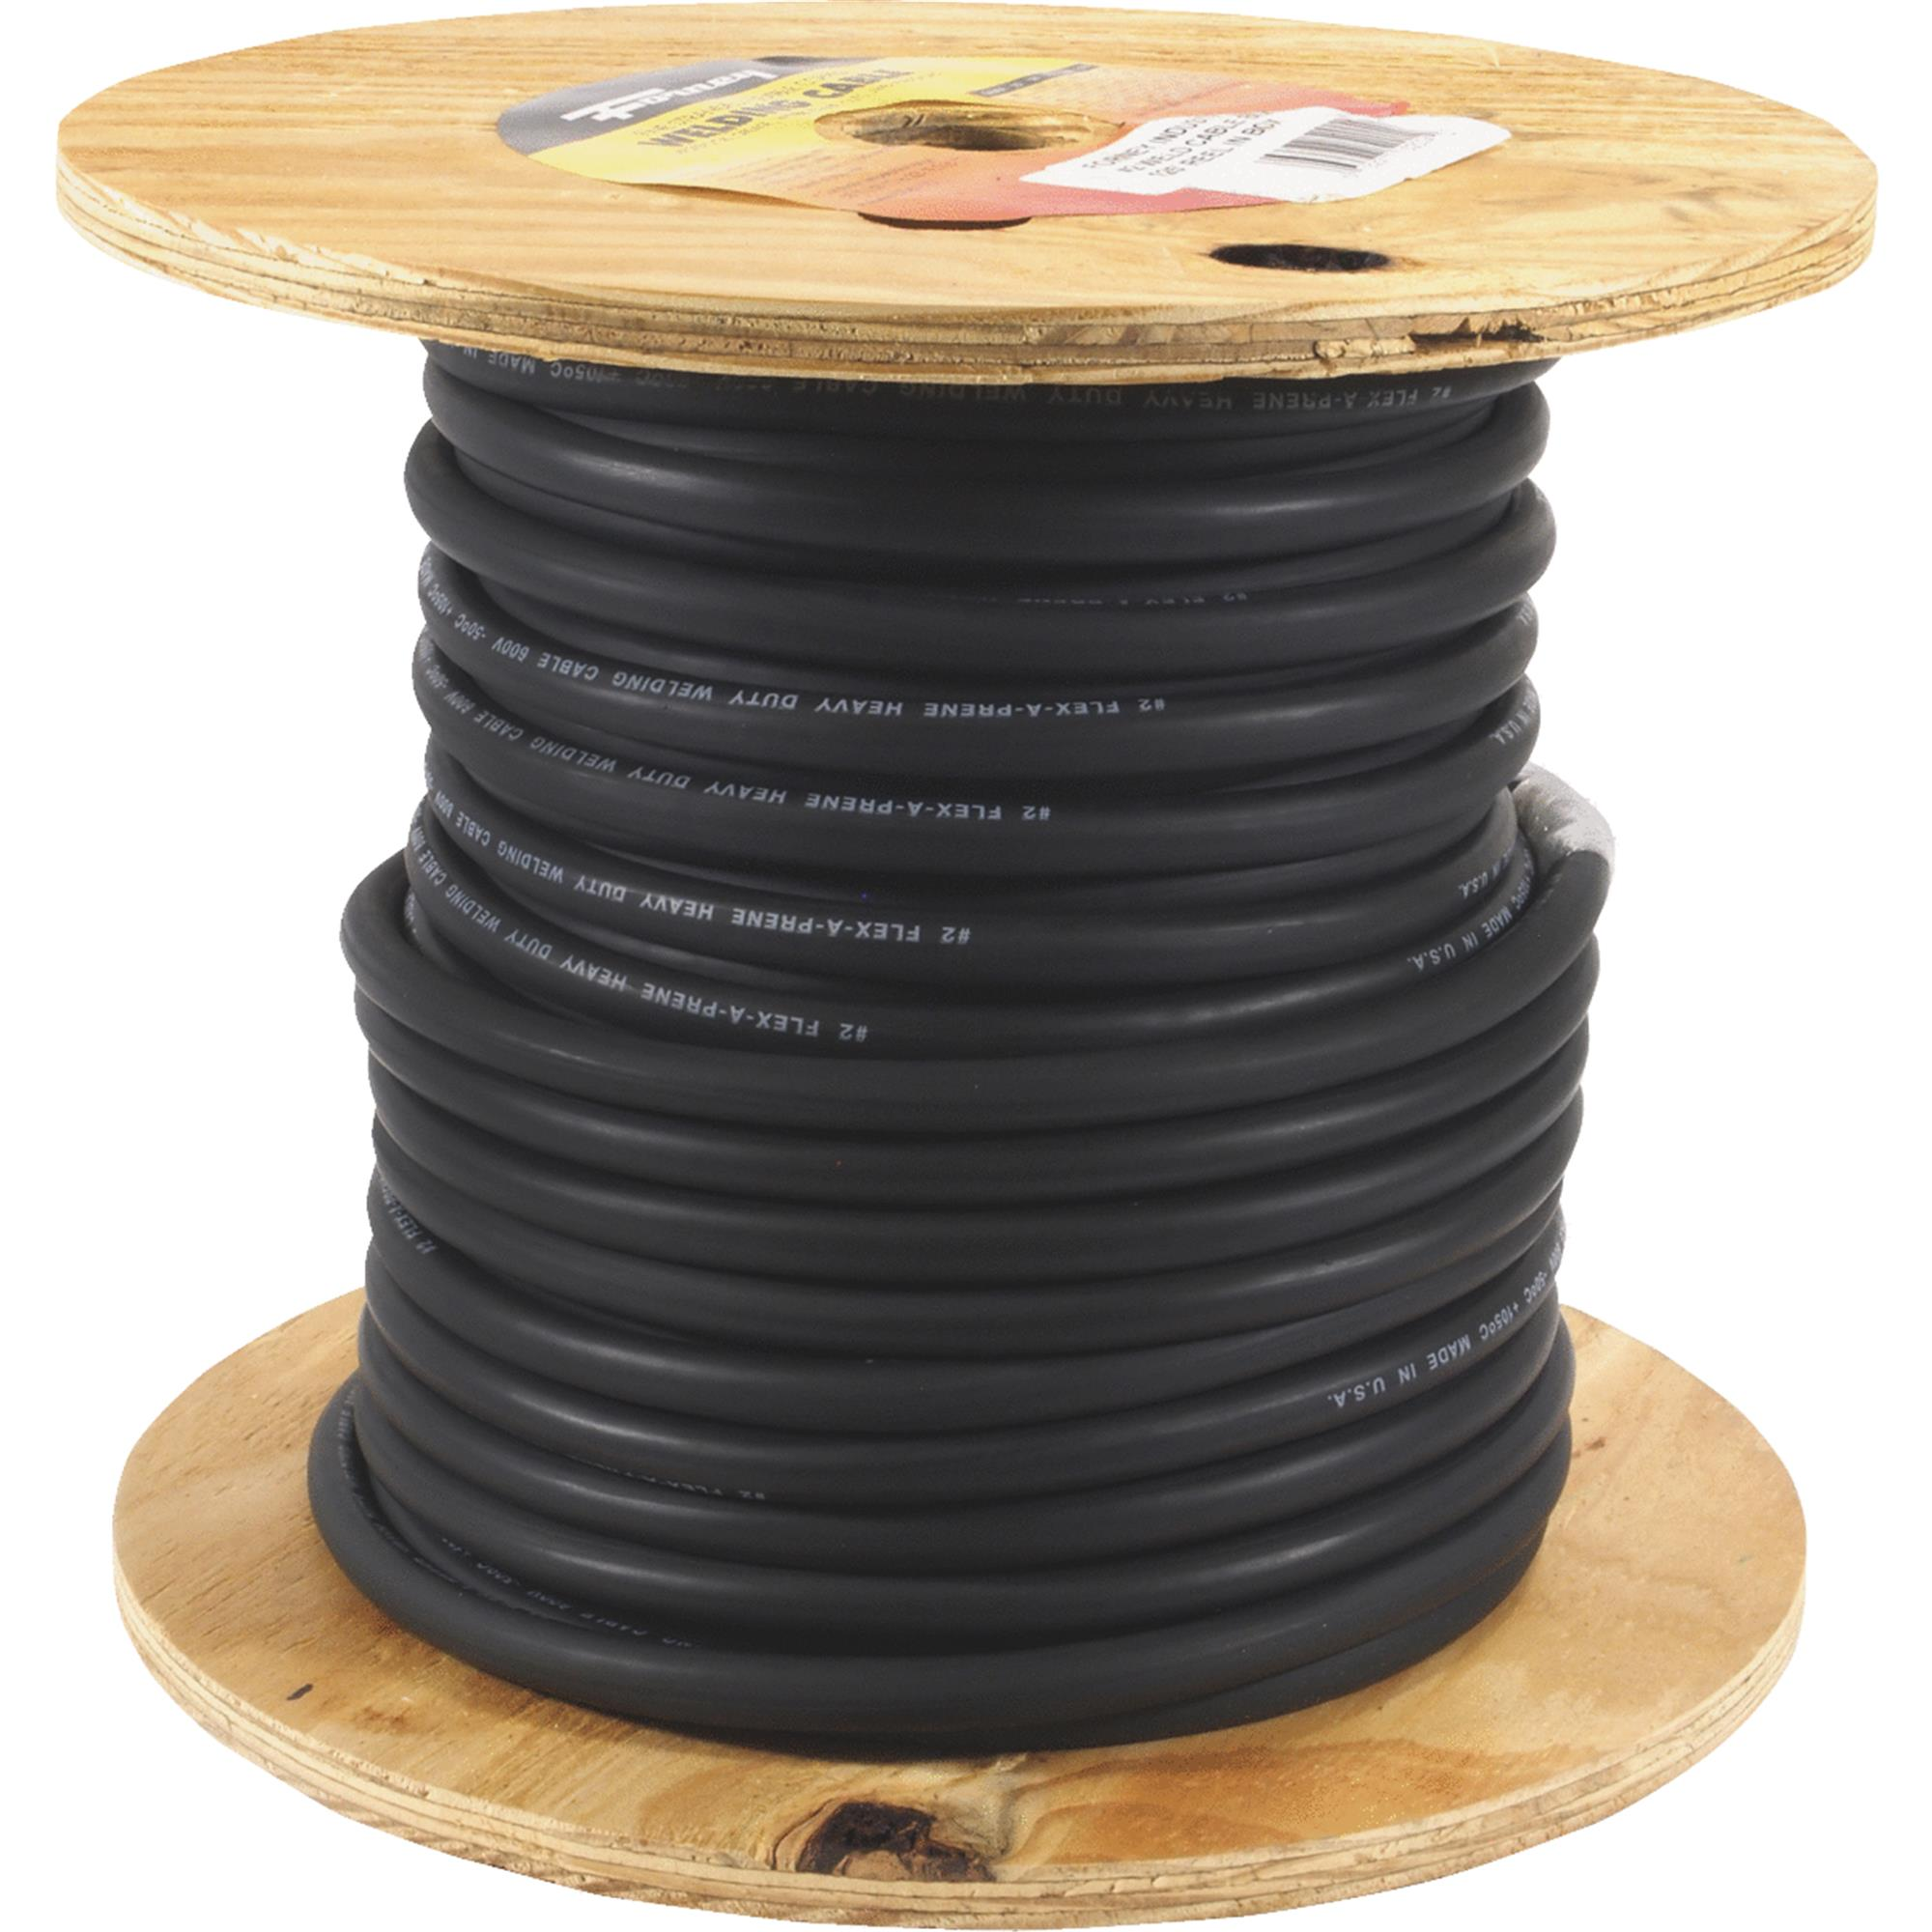 WELDING CABLE 2GA 125FT REEL